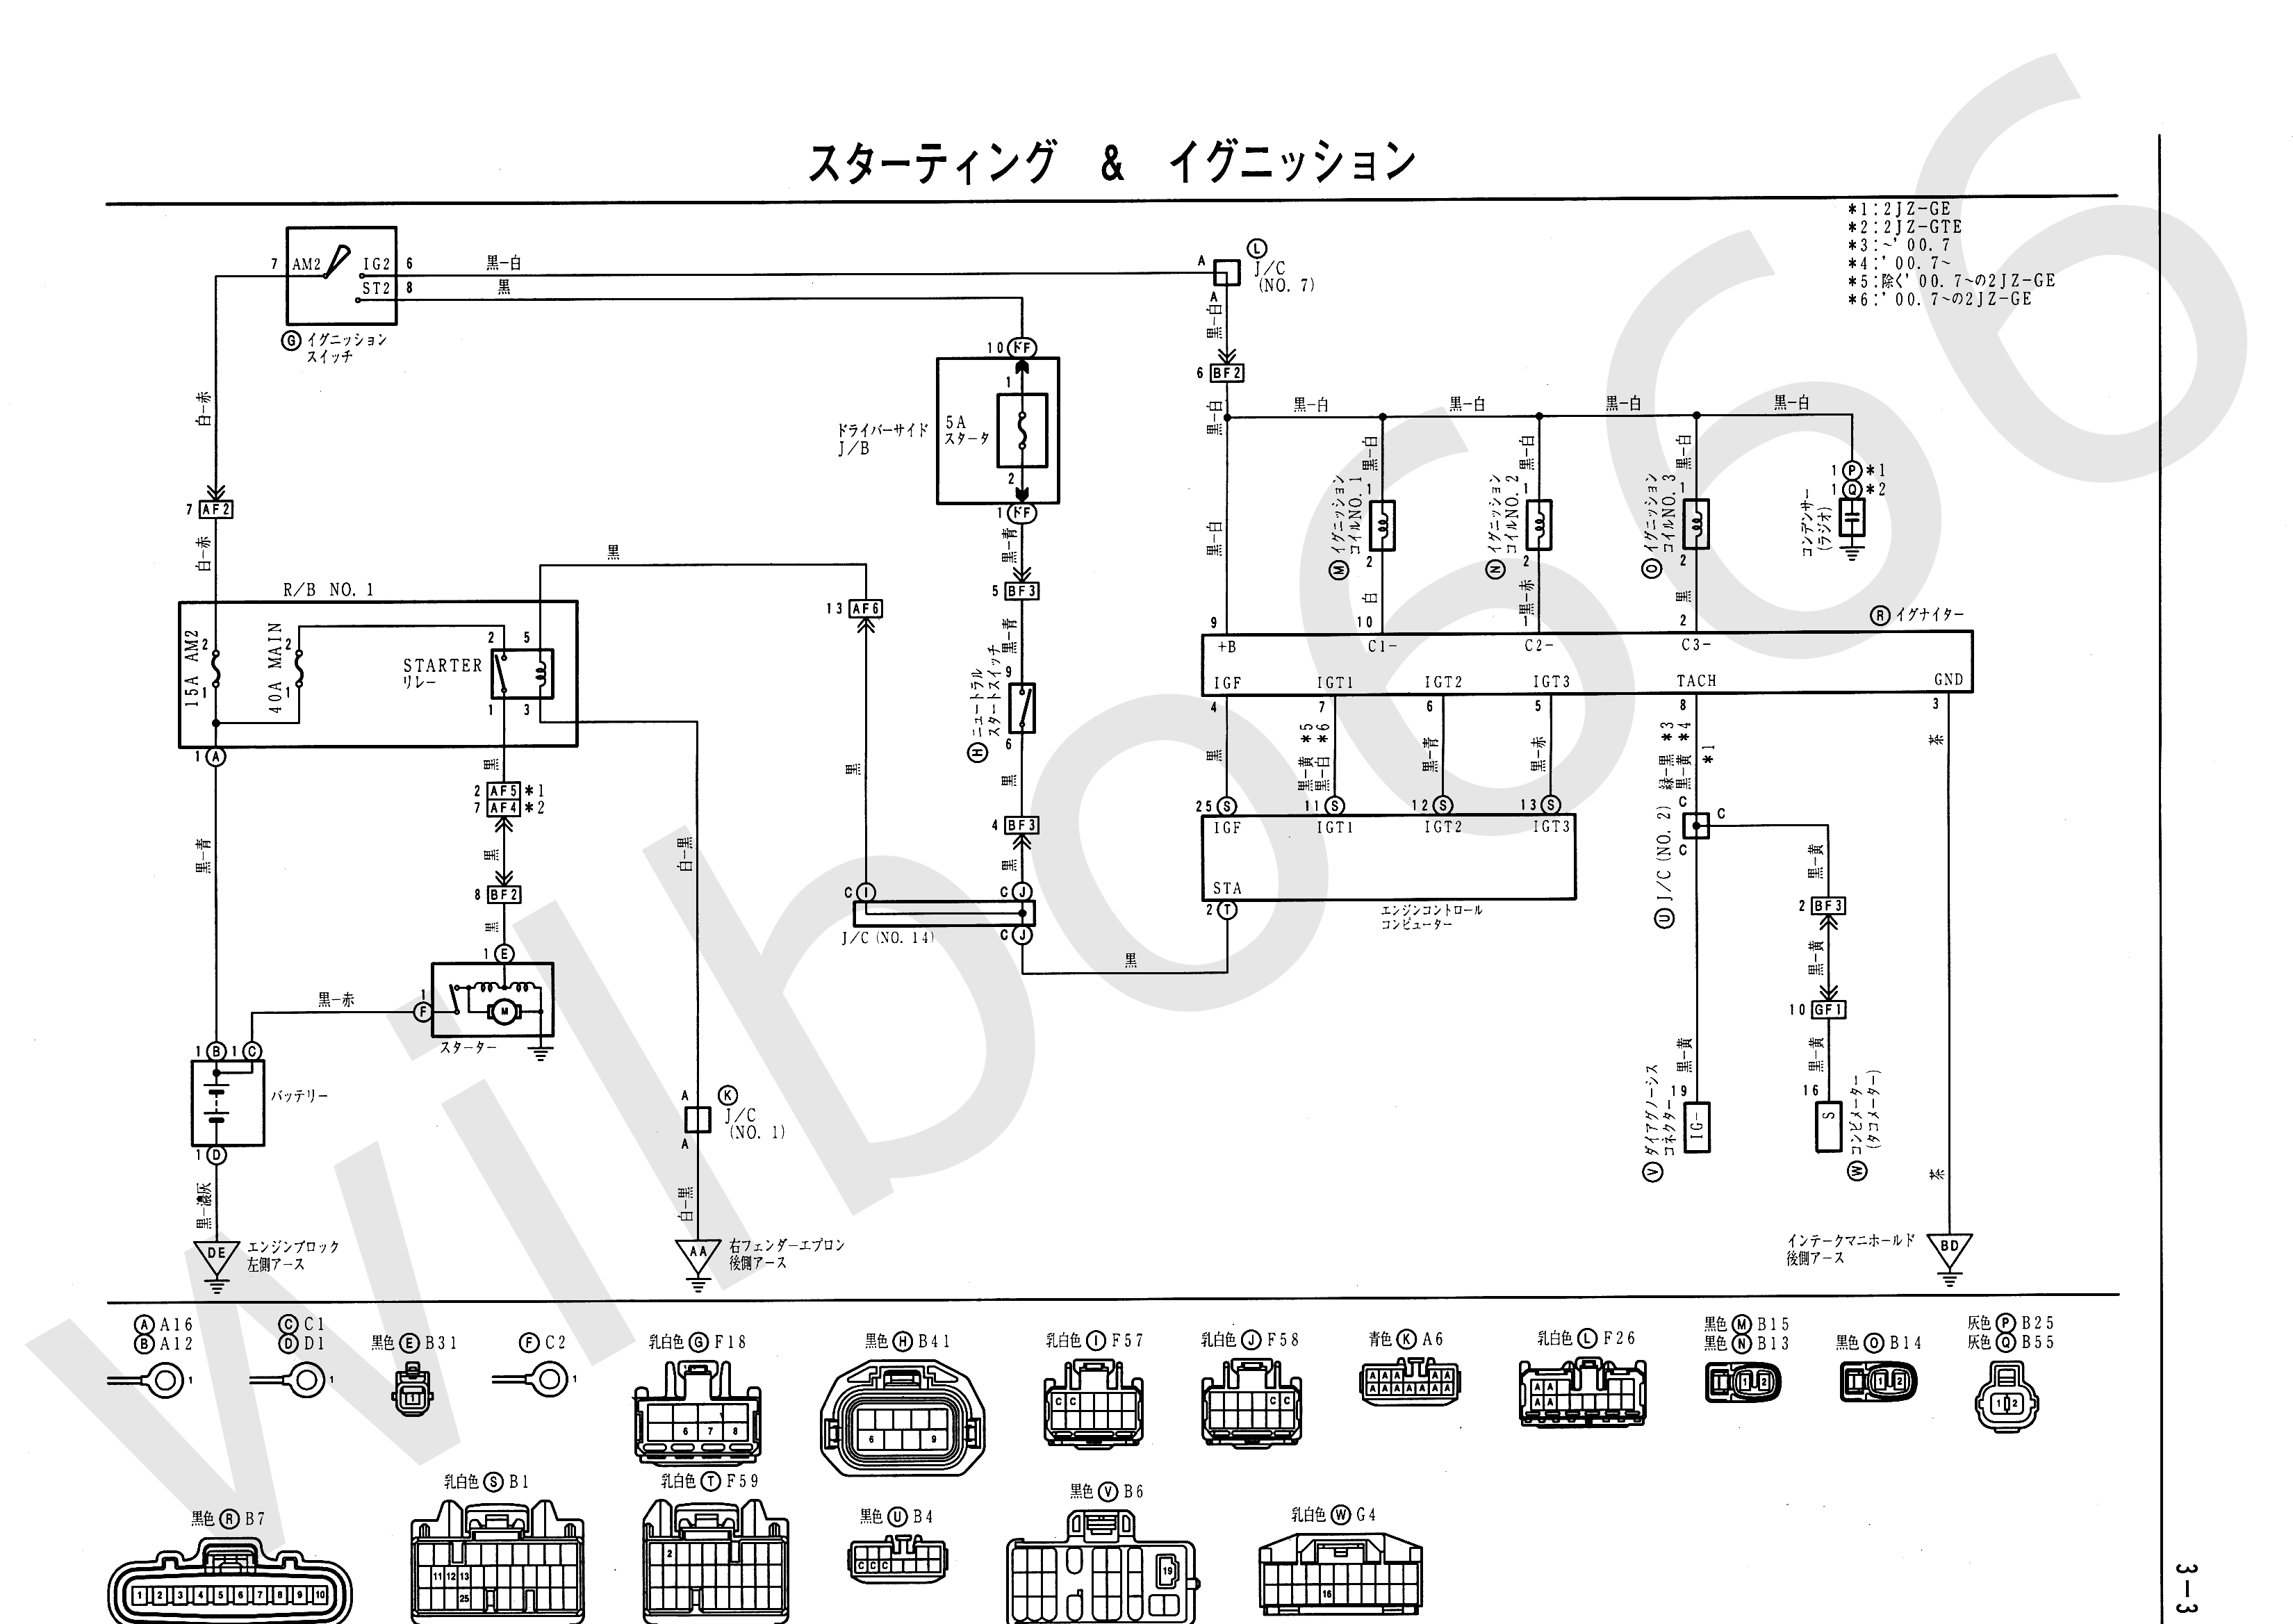 JZS161 Electrical Wiring Diagram 6748505 3 3 wilbo666 2jz gte vvti jzs161 aristo engine wiring ge 300 line control wiring diagram at eliteediting.co